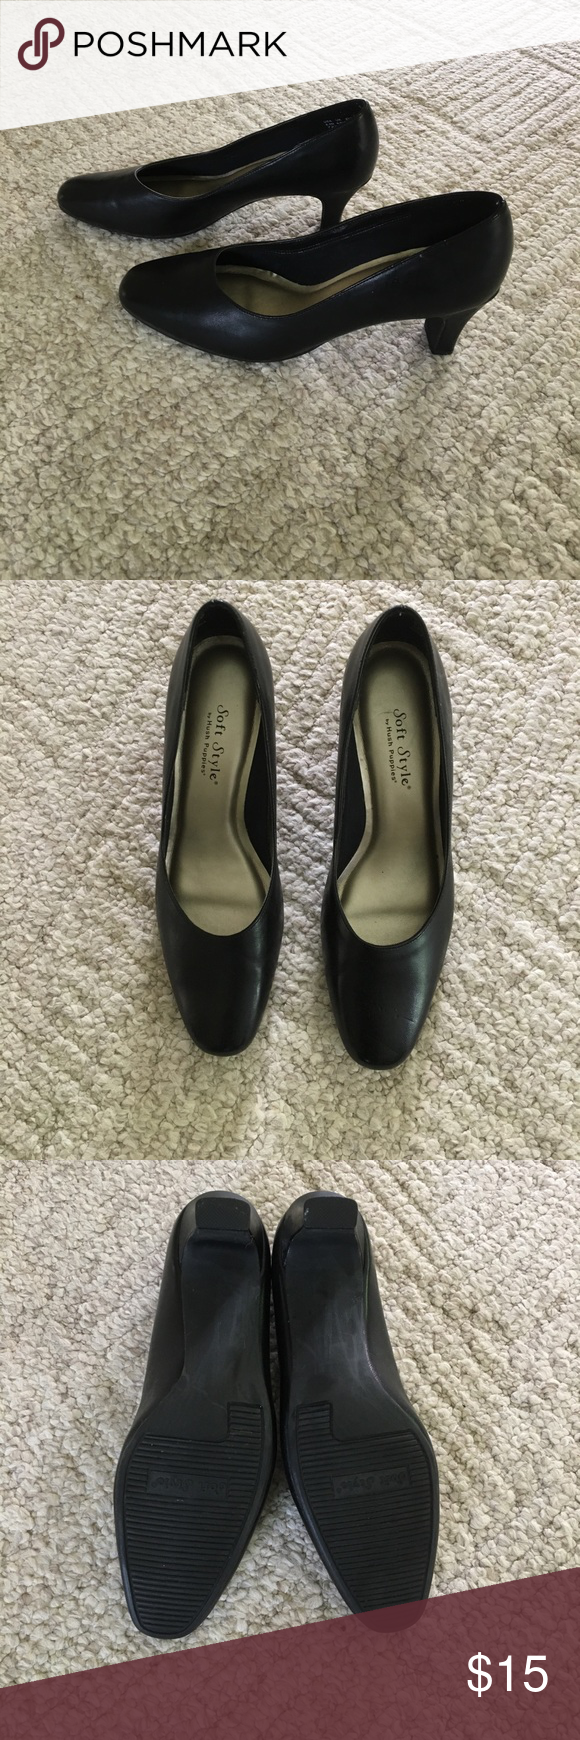 Hush Puppies Black Heels By Wolverine Made In Usa Heels Hush Puppies Shoes